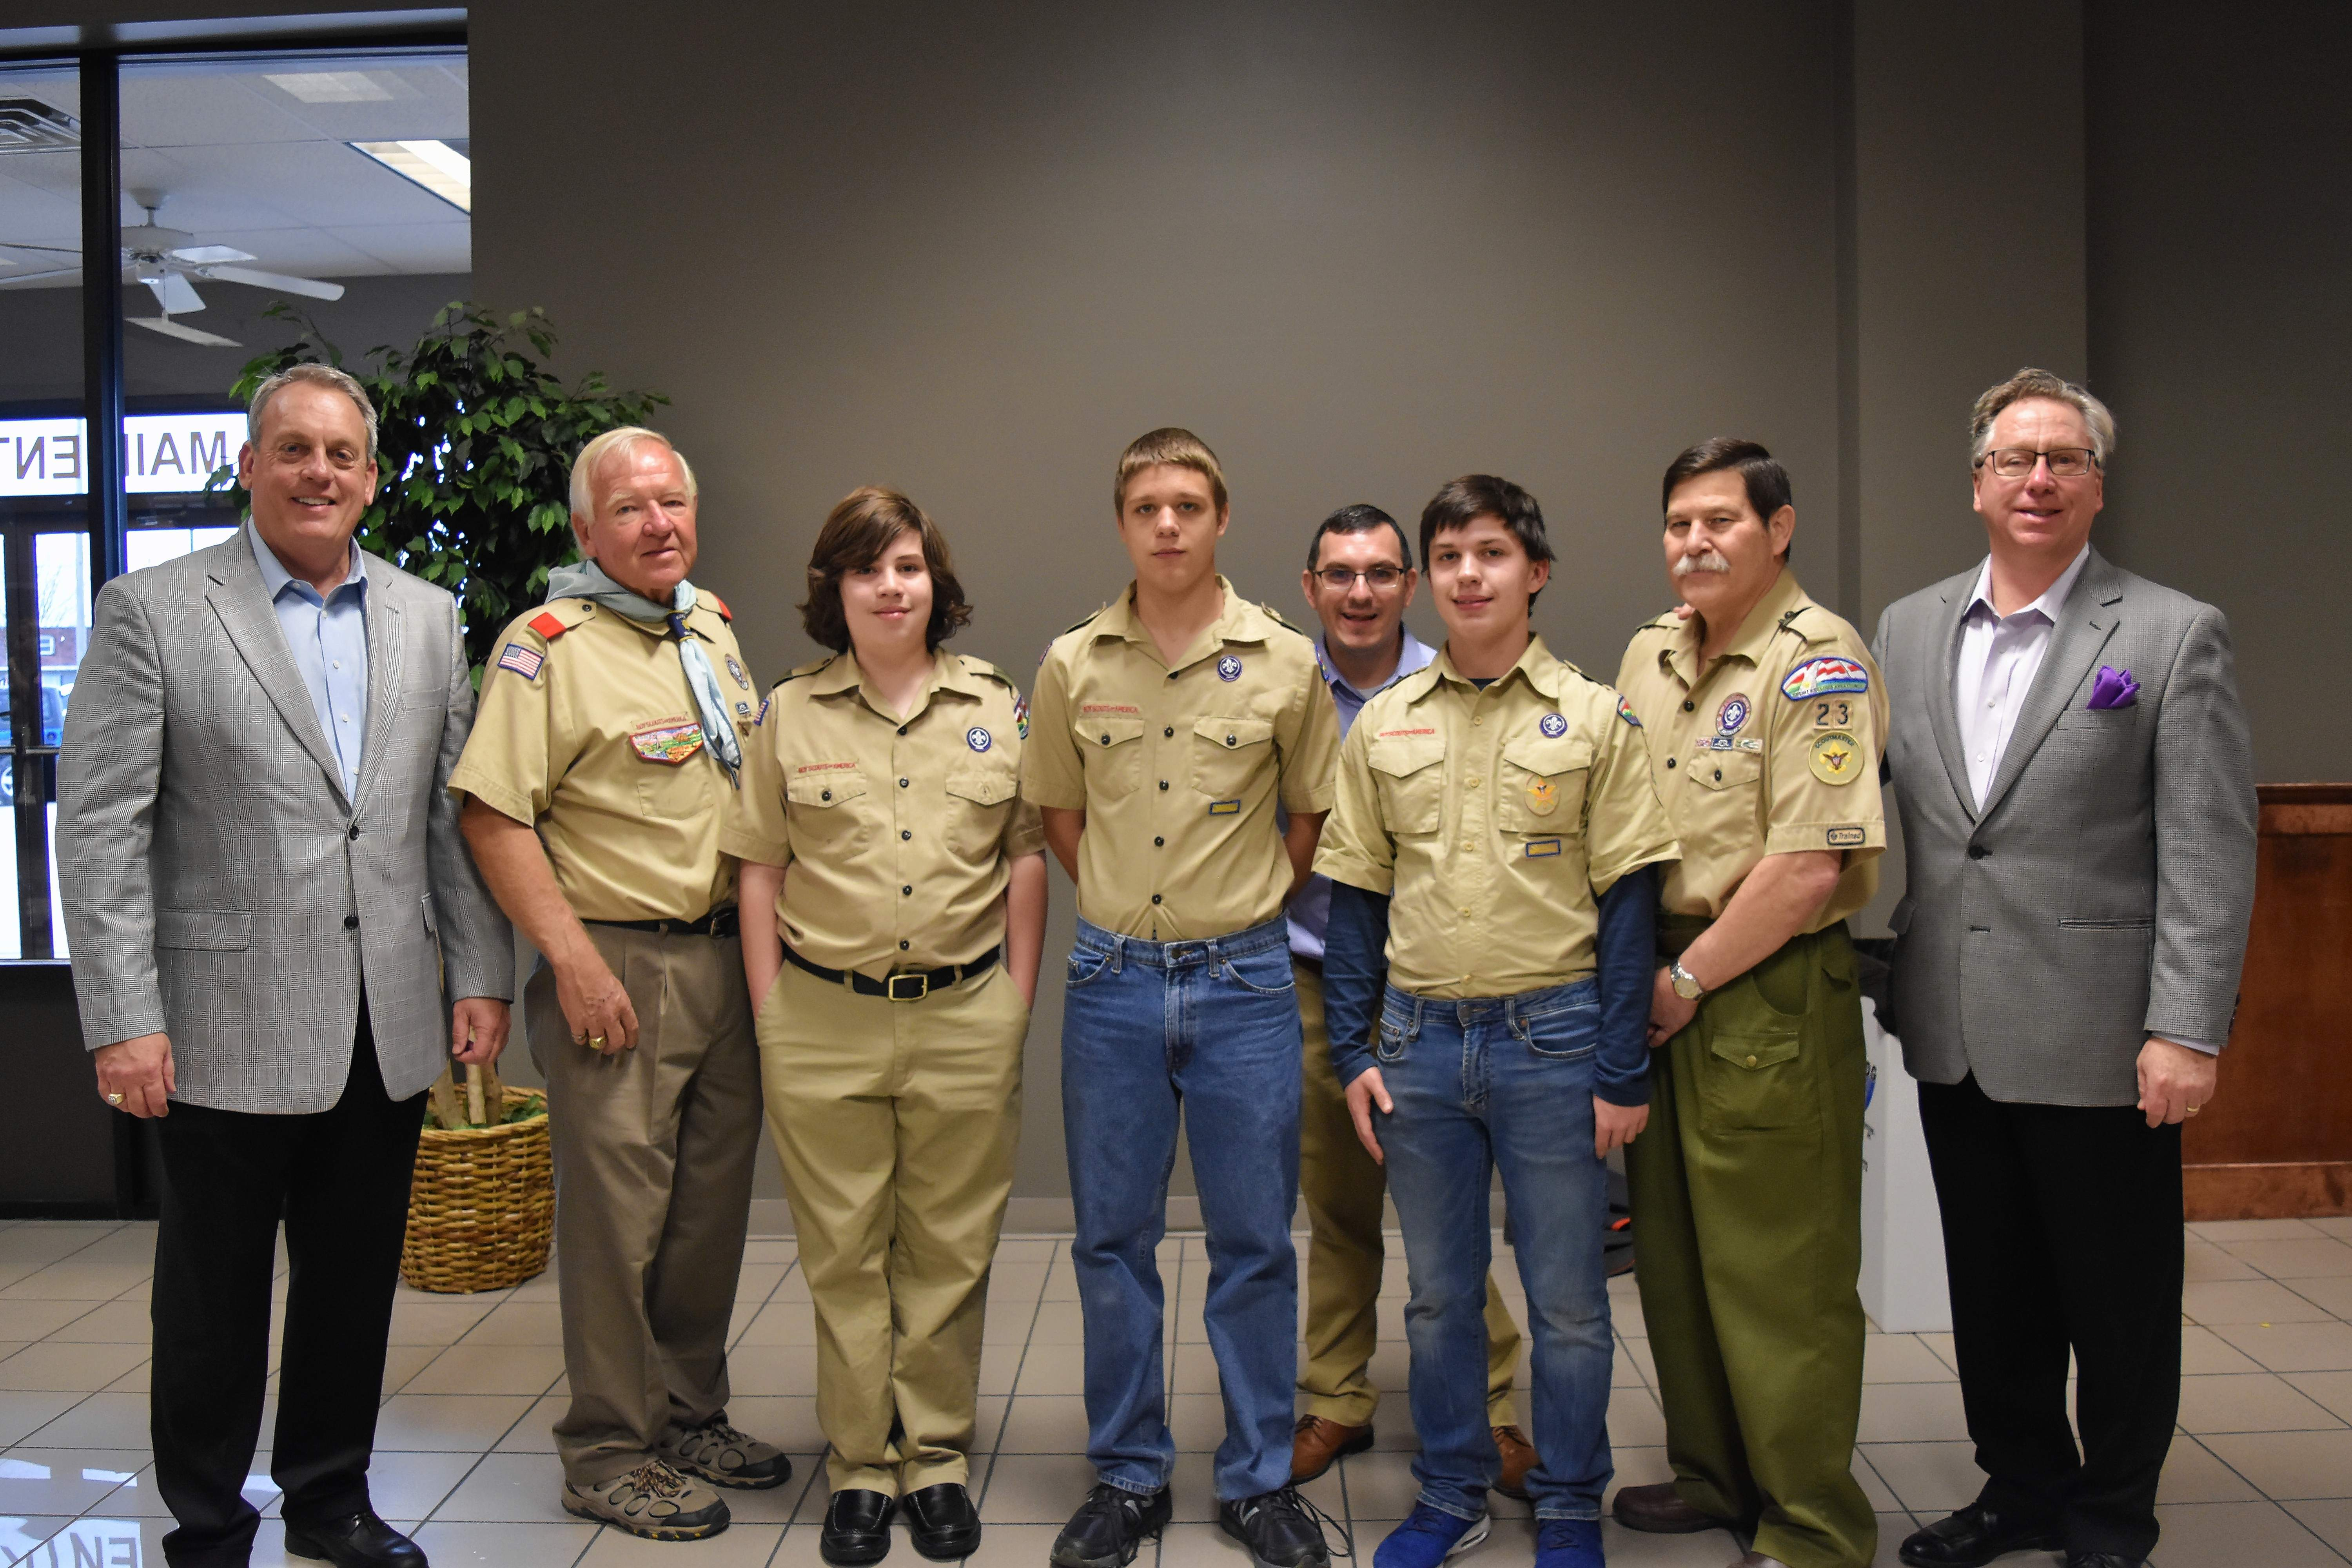 Harrisburg Boy Scout Troop 23 volunteered their help at the 20th Annual Taste of Southern Illinois. From left are state Sen. Dale Fowler, Scout Master Rick Nelson, Wilson DeNeal, Roger Head, Scout leader Justin Fulkerson, David Mitchell, Scout leader Bob Dick and Taste of SI Founder Michael Tison.